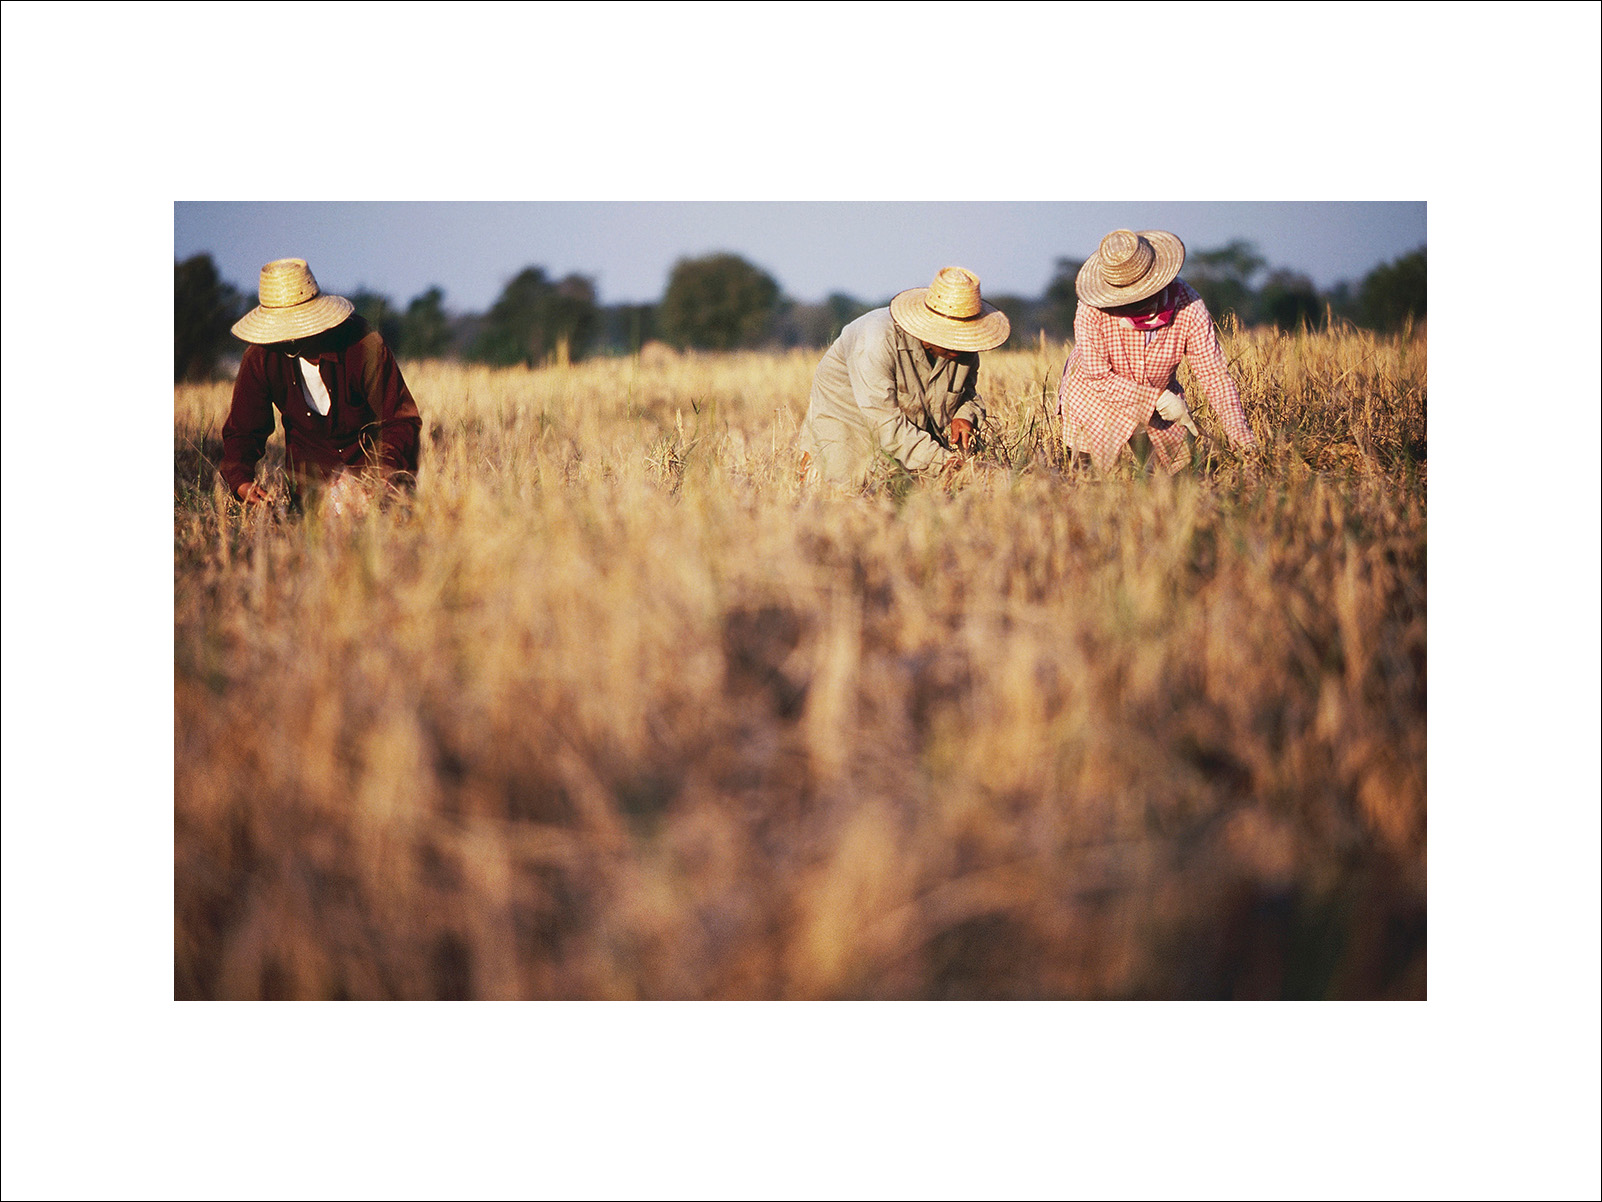 Thai Rice farmers during the harvest